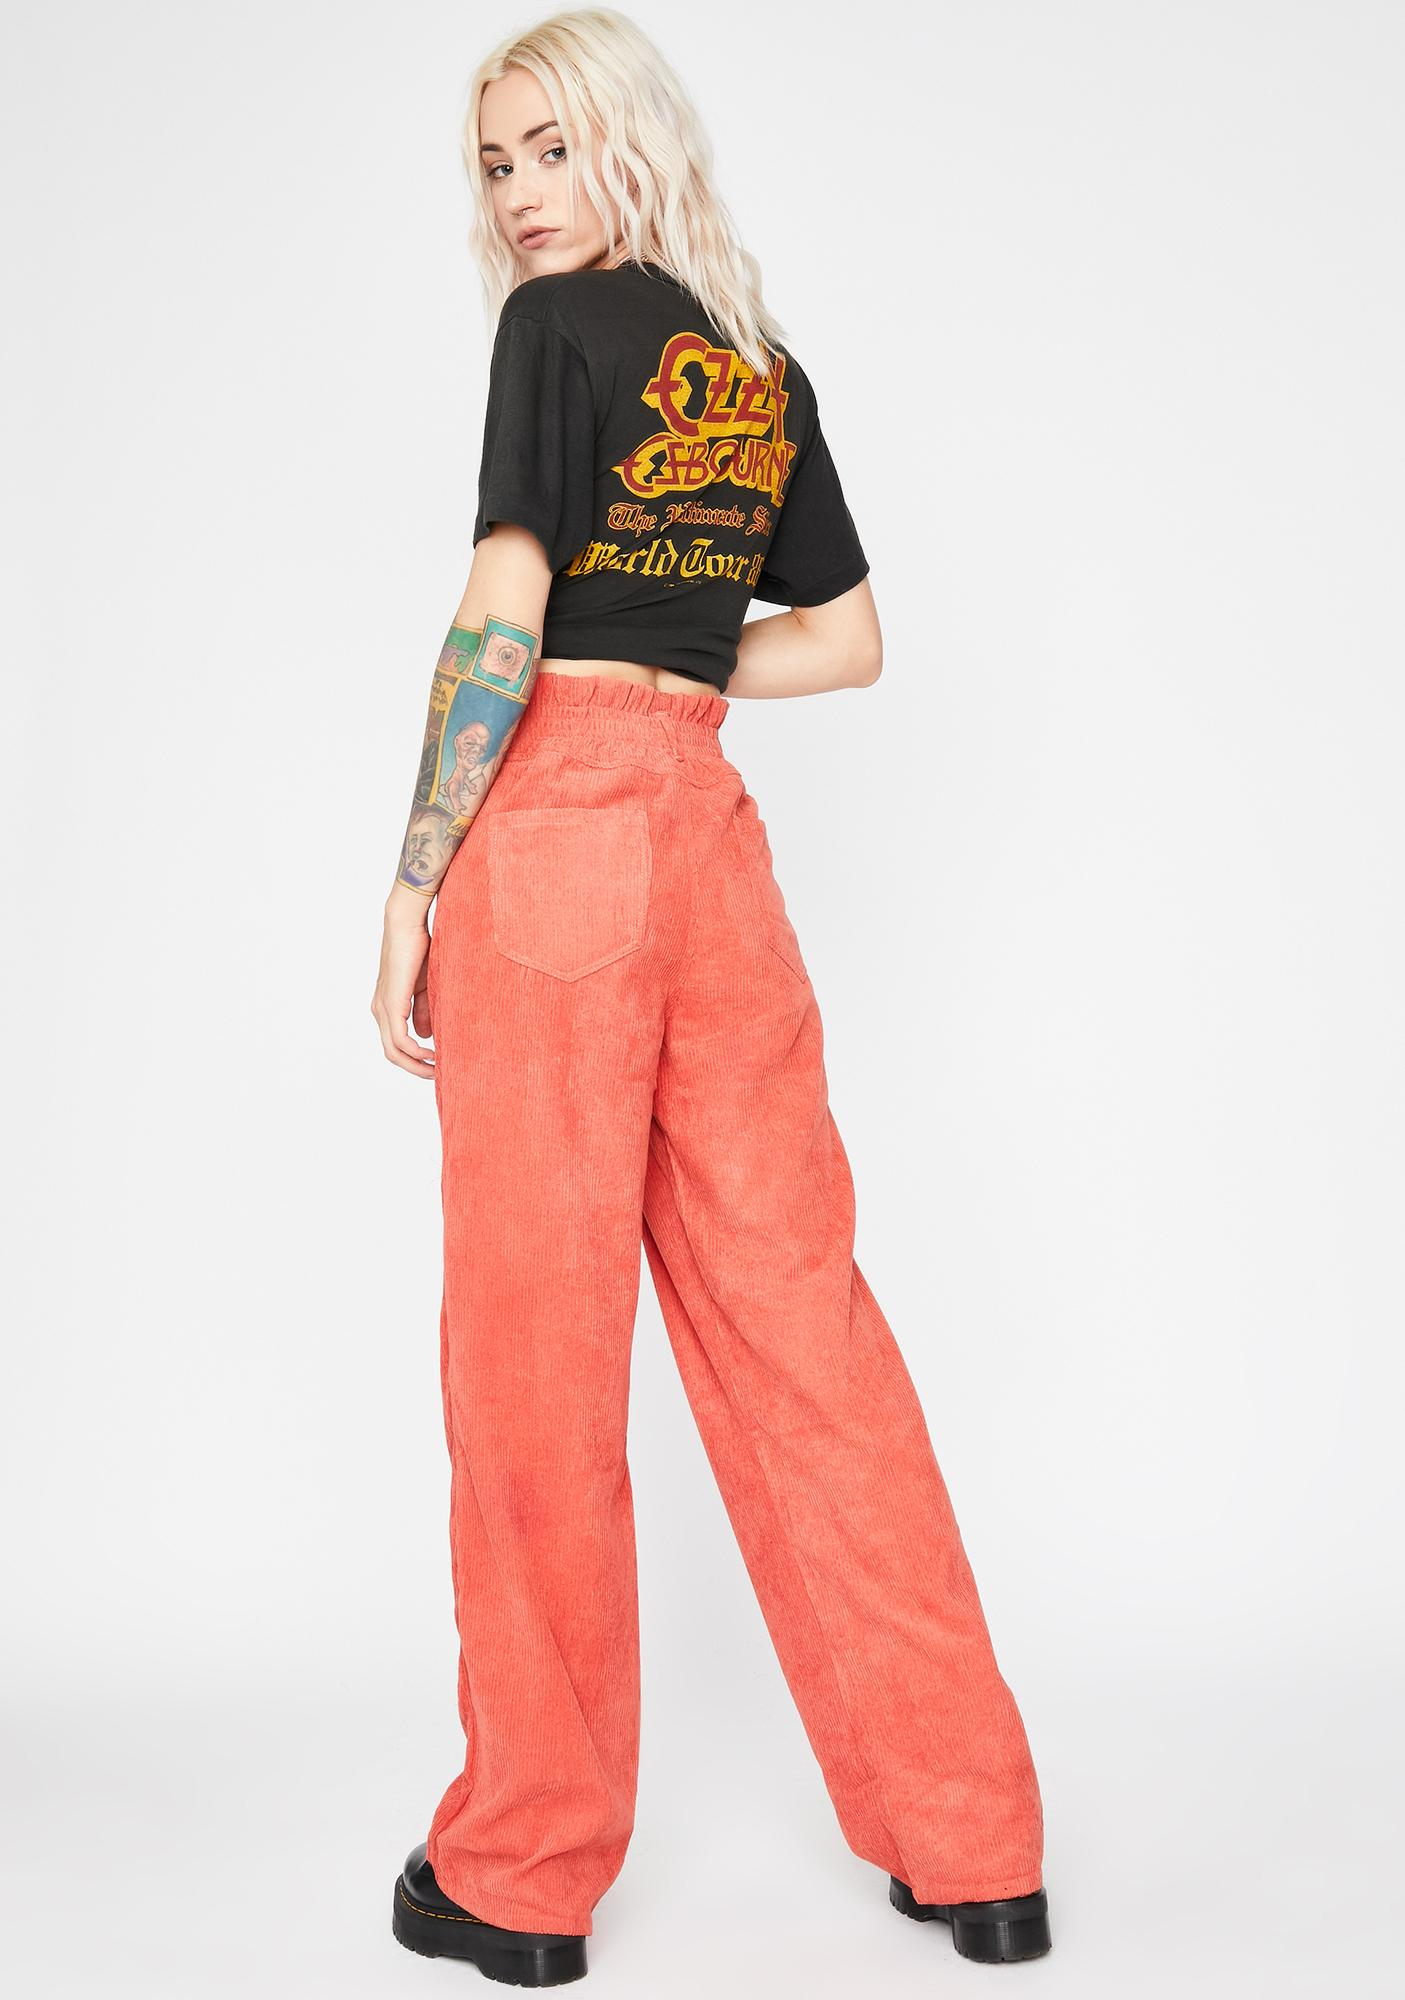 Rebel Roadie Cargo Pants